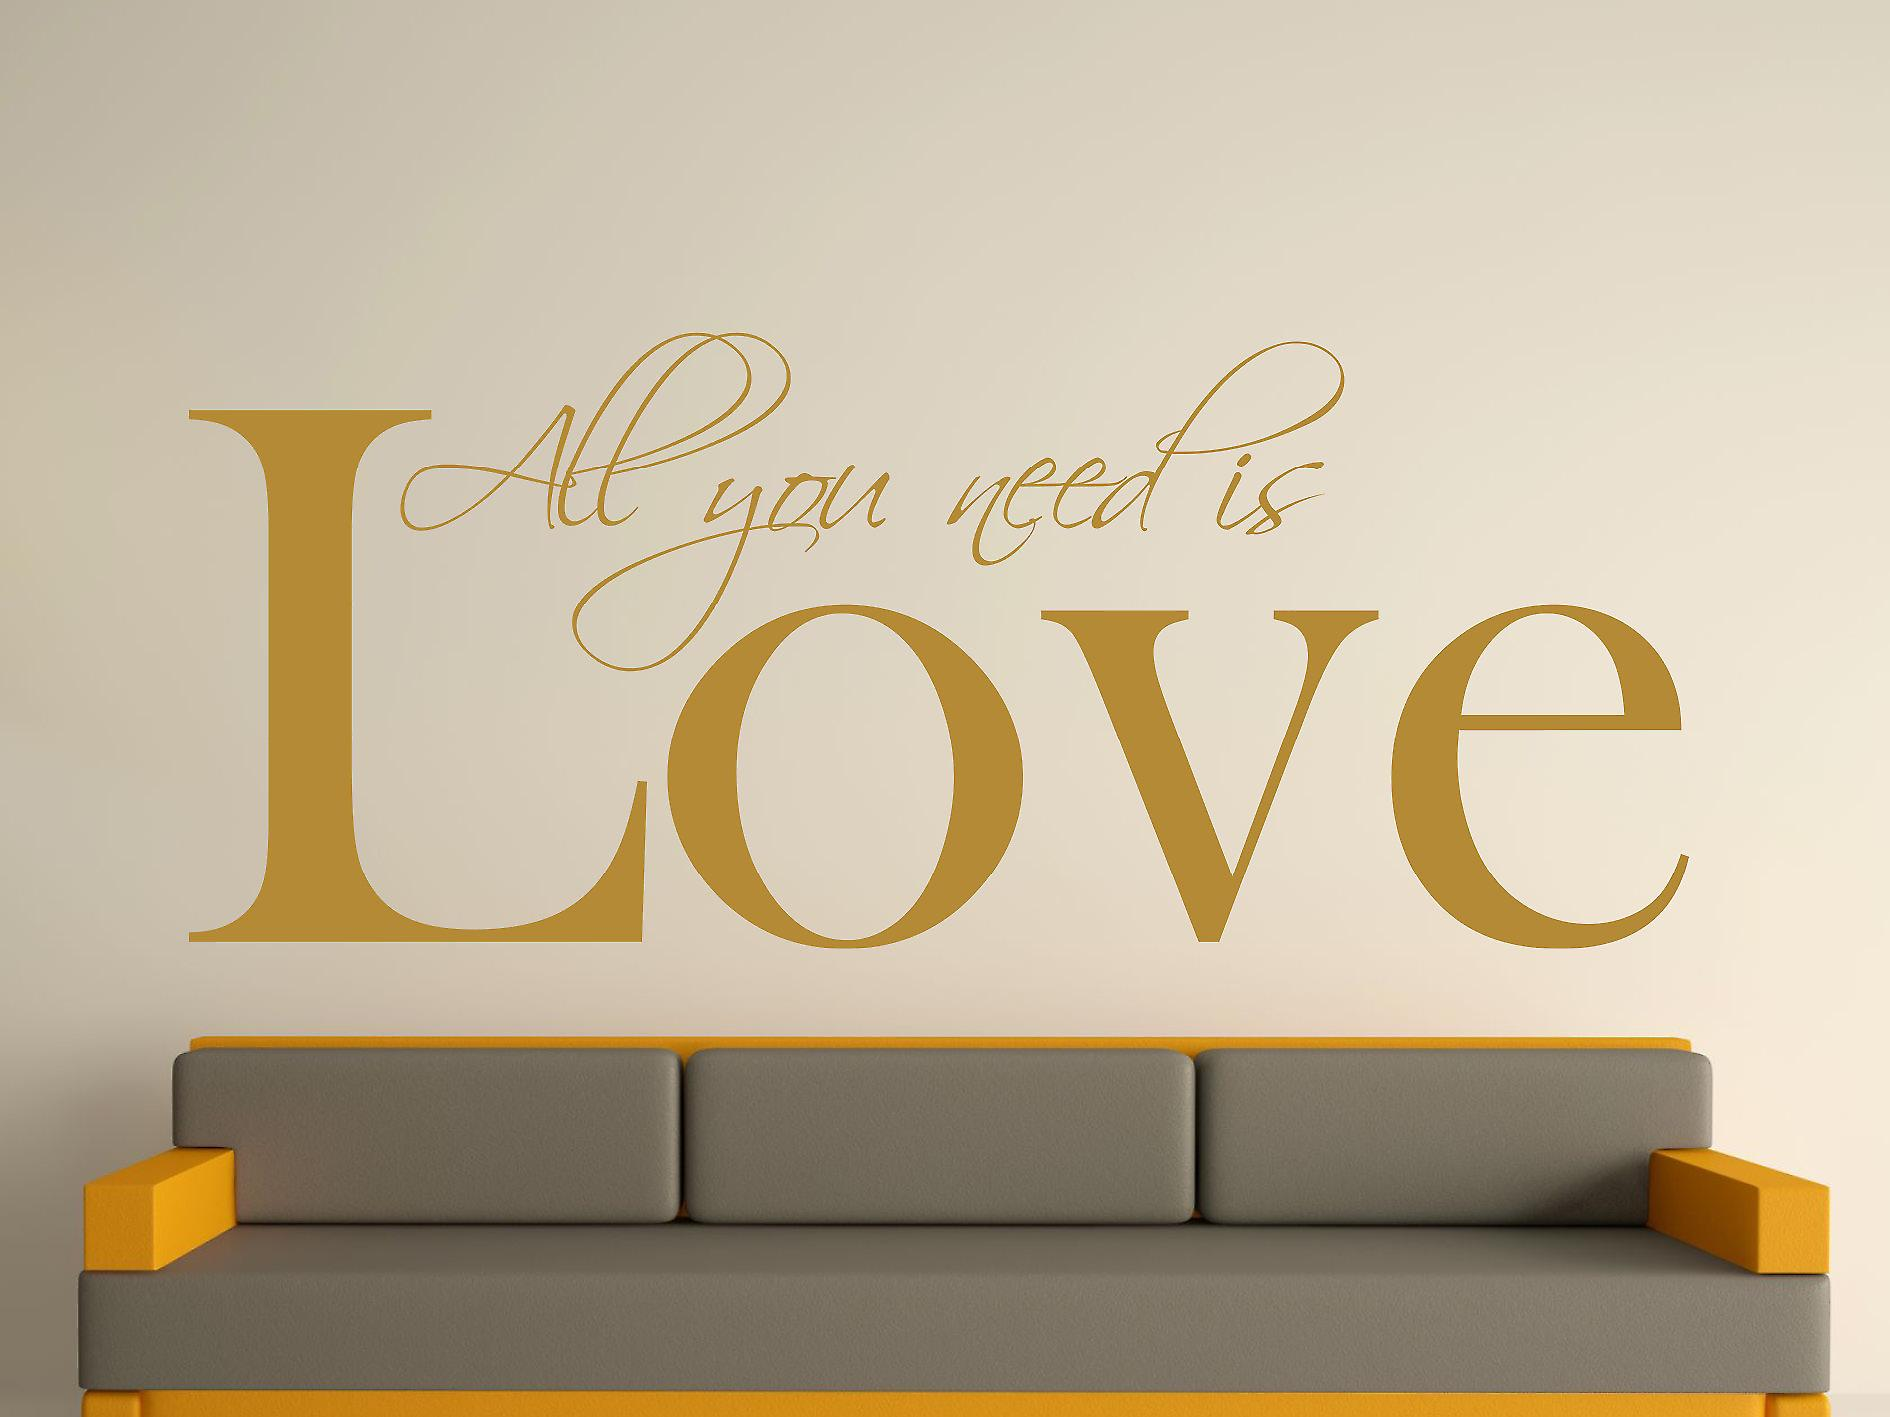 Alles wat je nodig Wall Art Sticker - goud